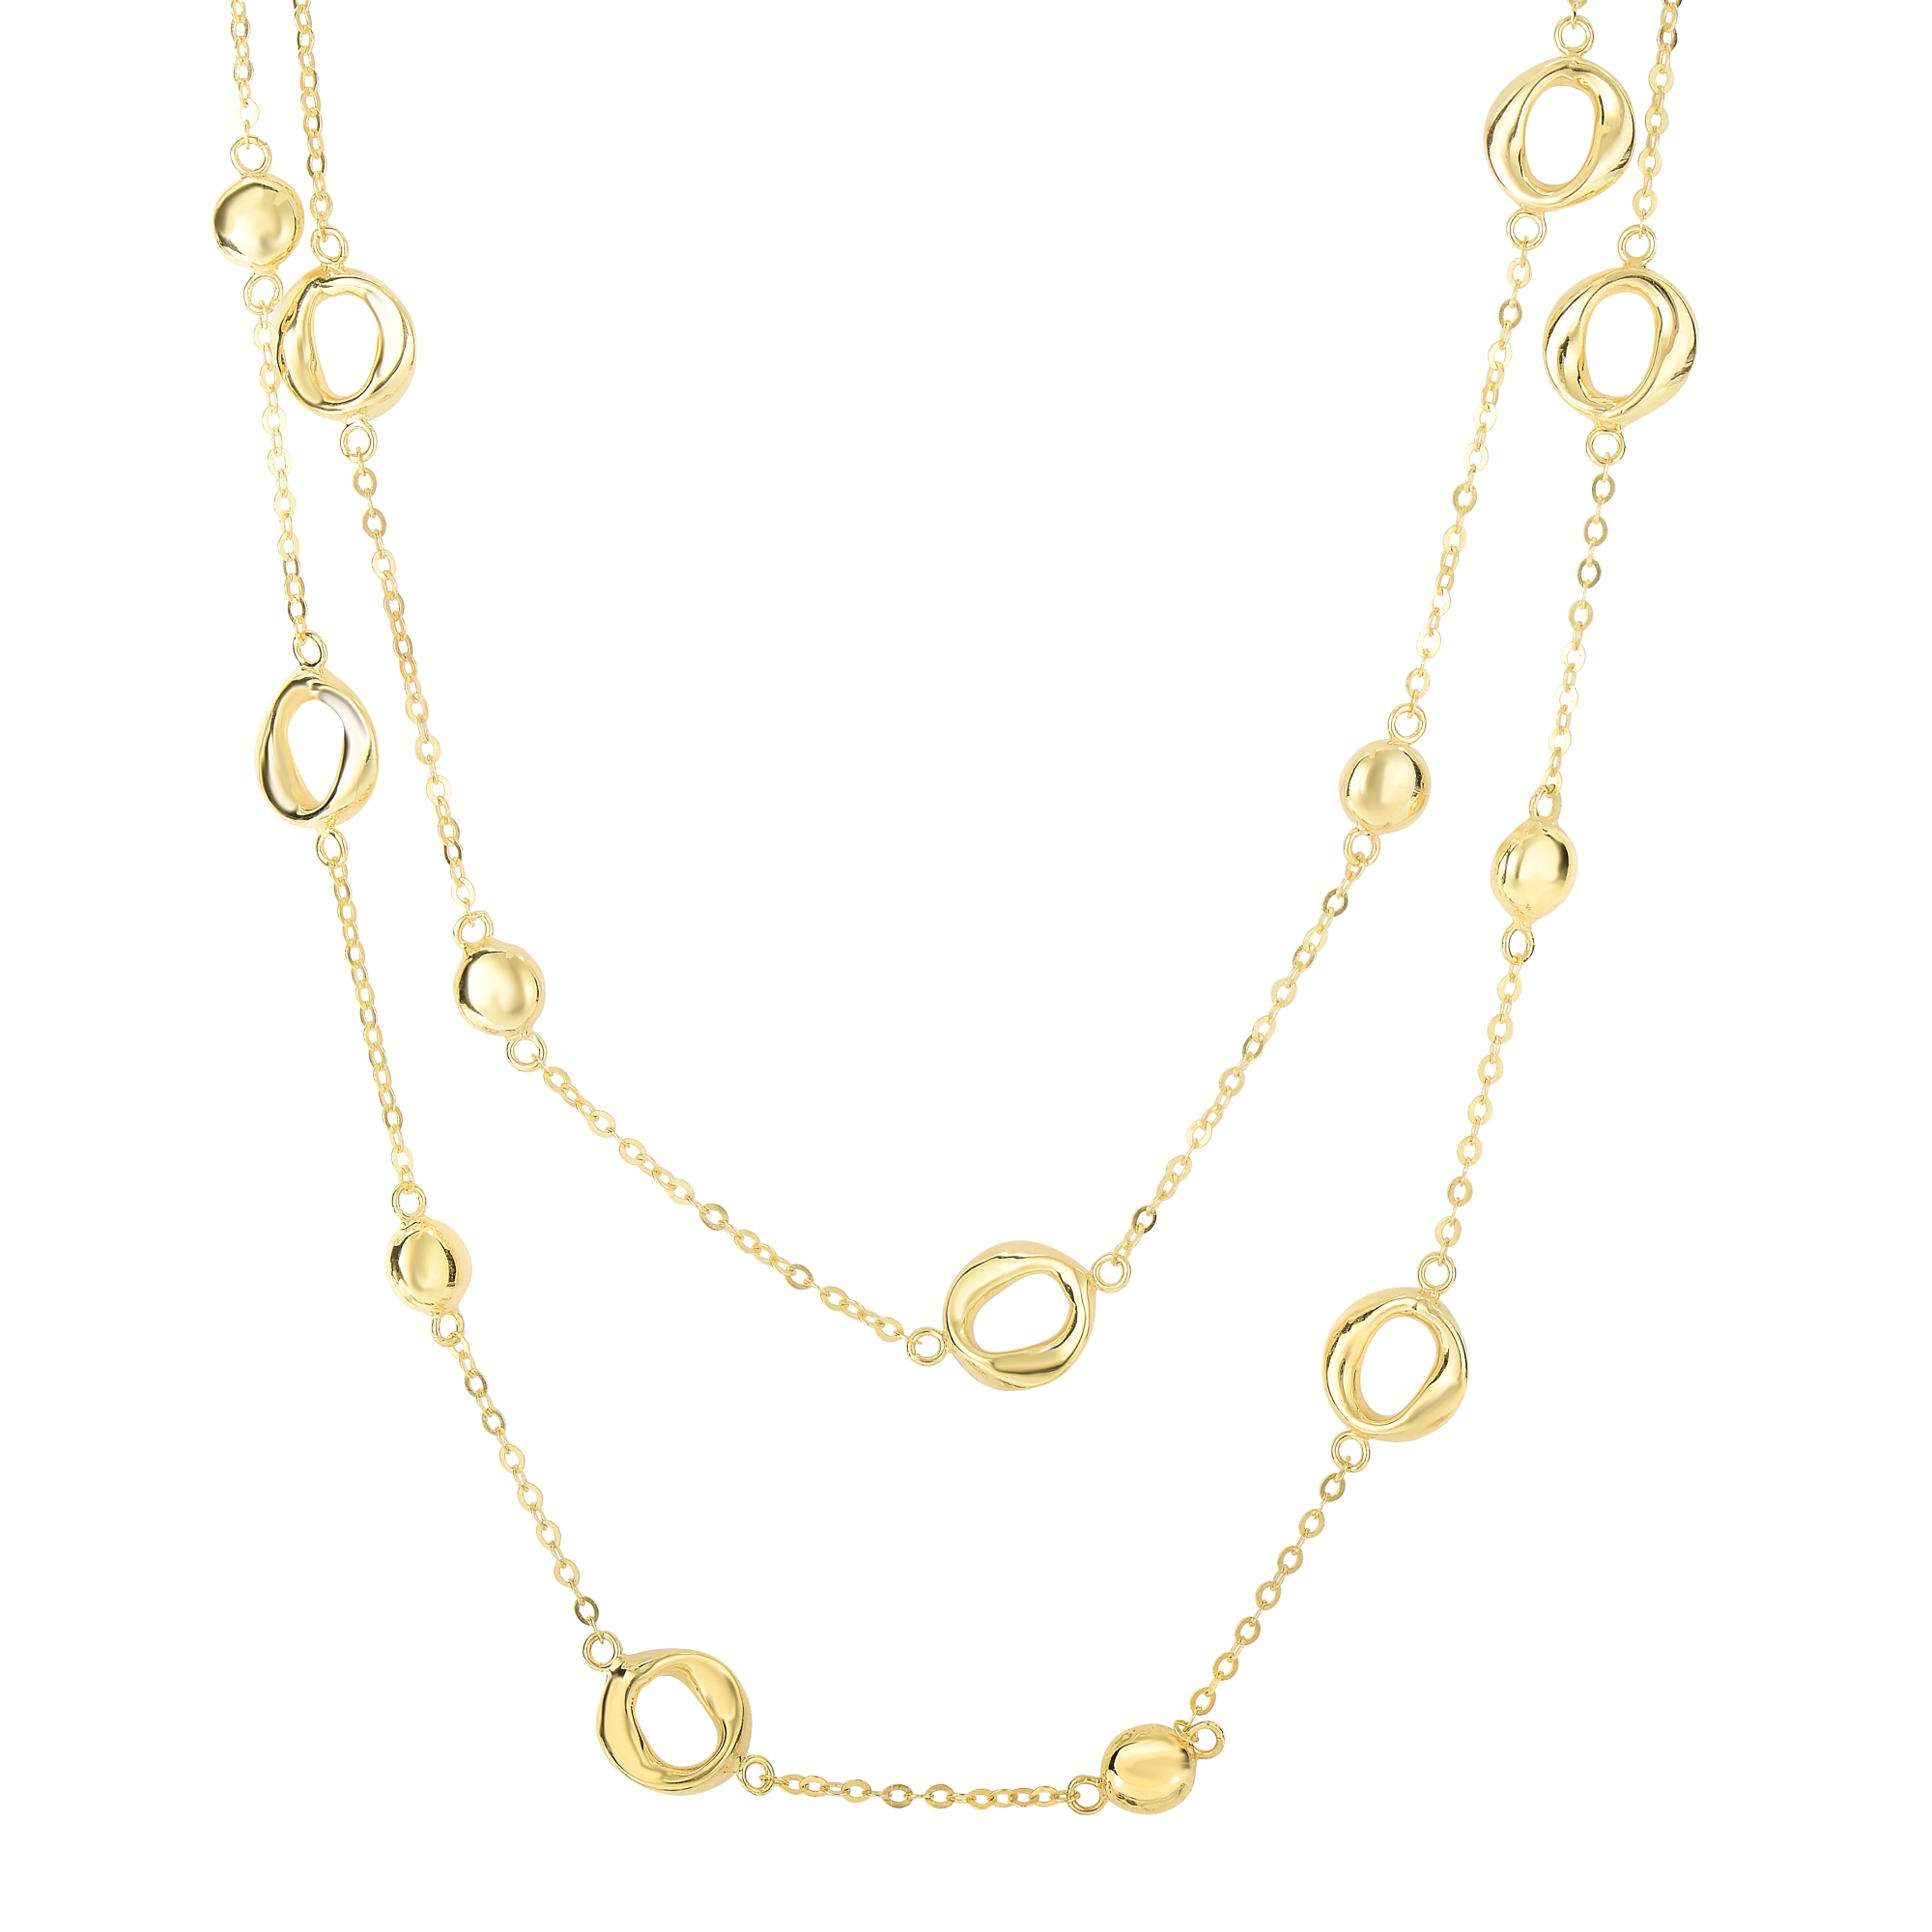 14K Yellow Gold 9.8-1.6mm Shiny Round Puff Circle+Twisted Open Oval On Single Into Double Drop Piatto Type Fancy... by Goldia